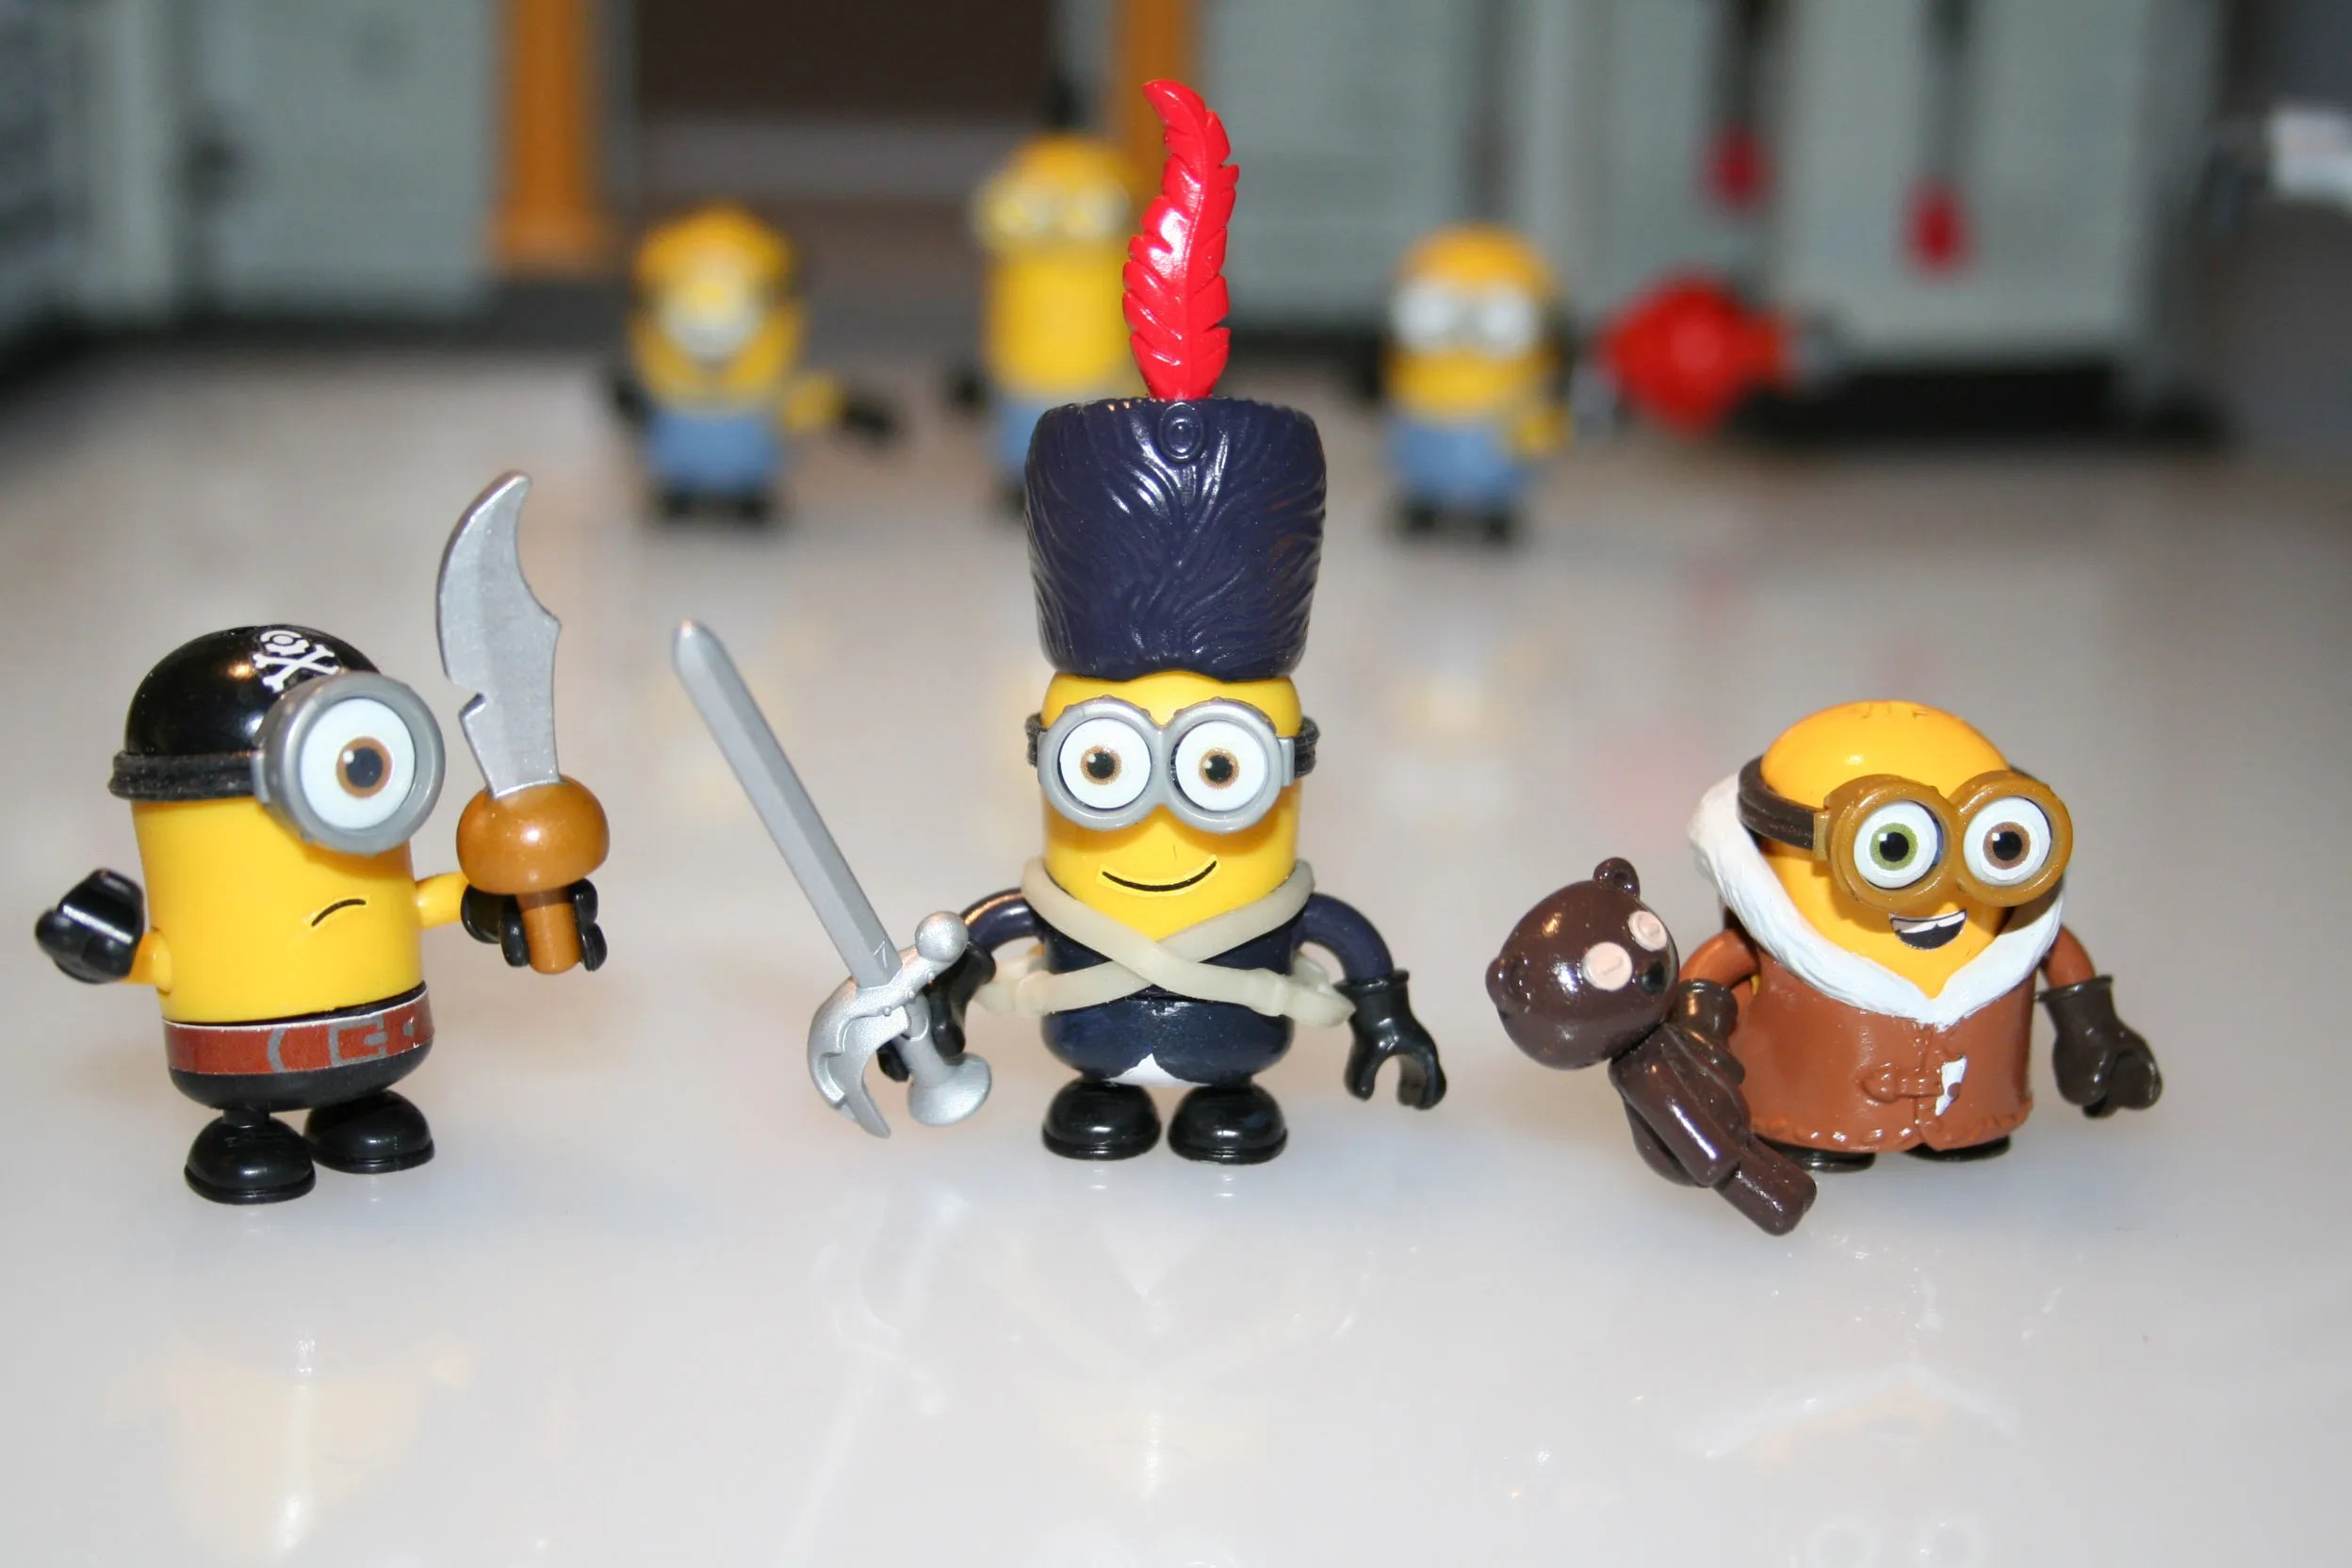 Minions Toys Games Apparel And More From Universal